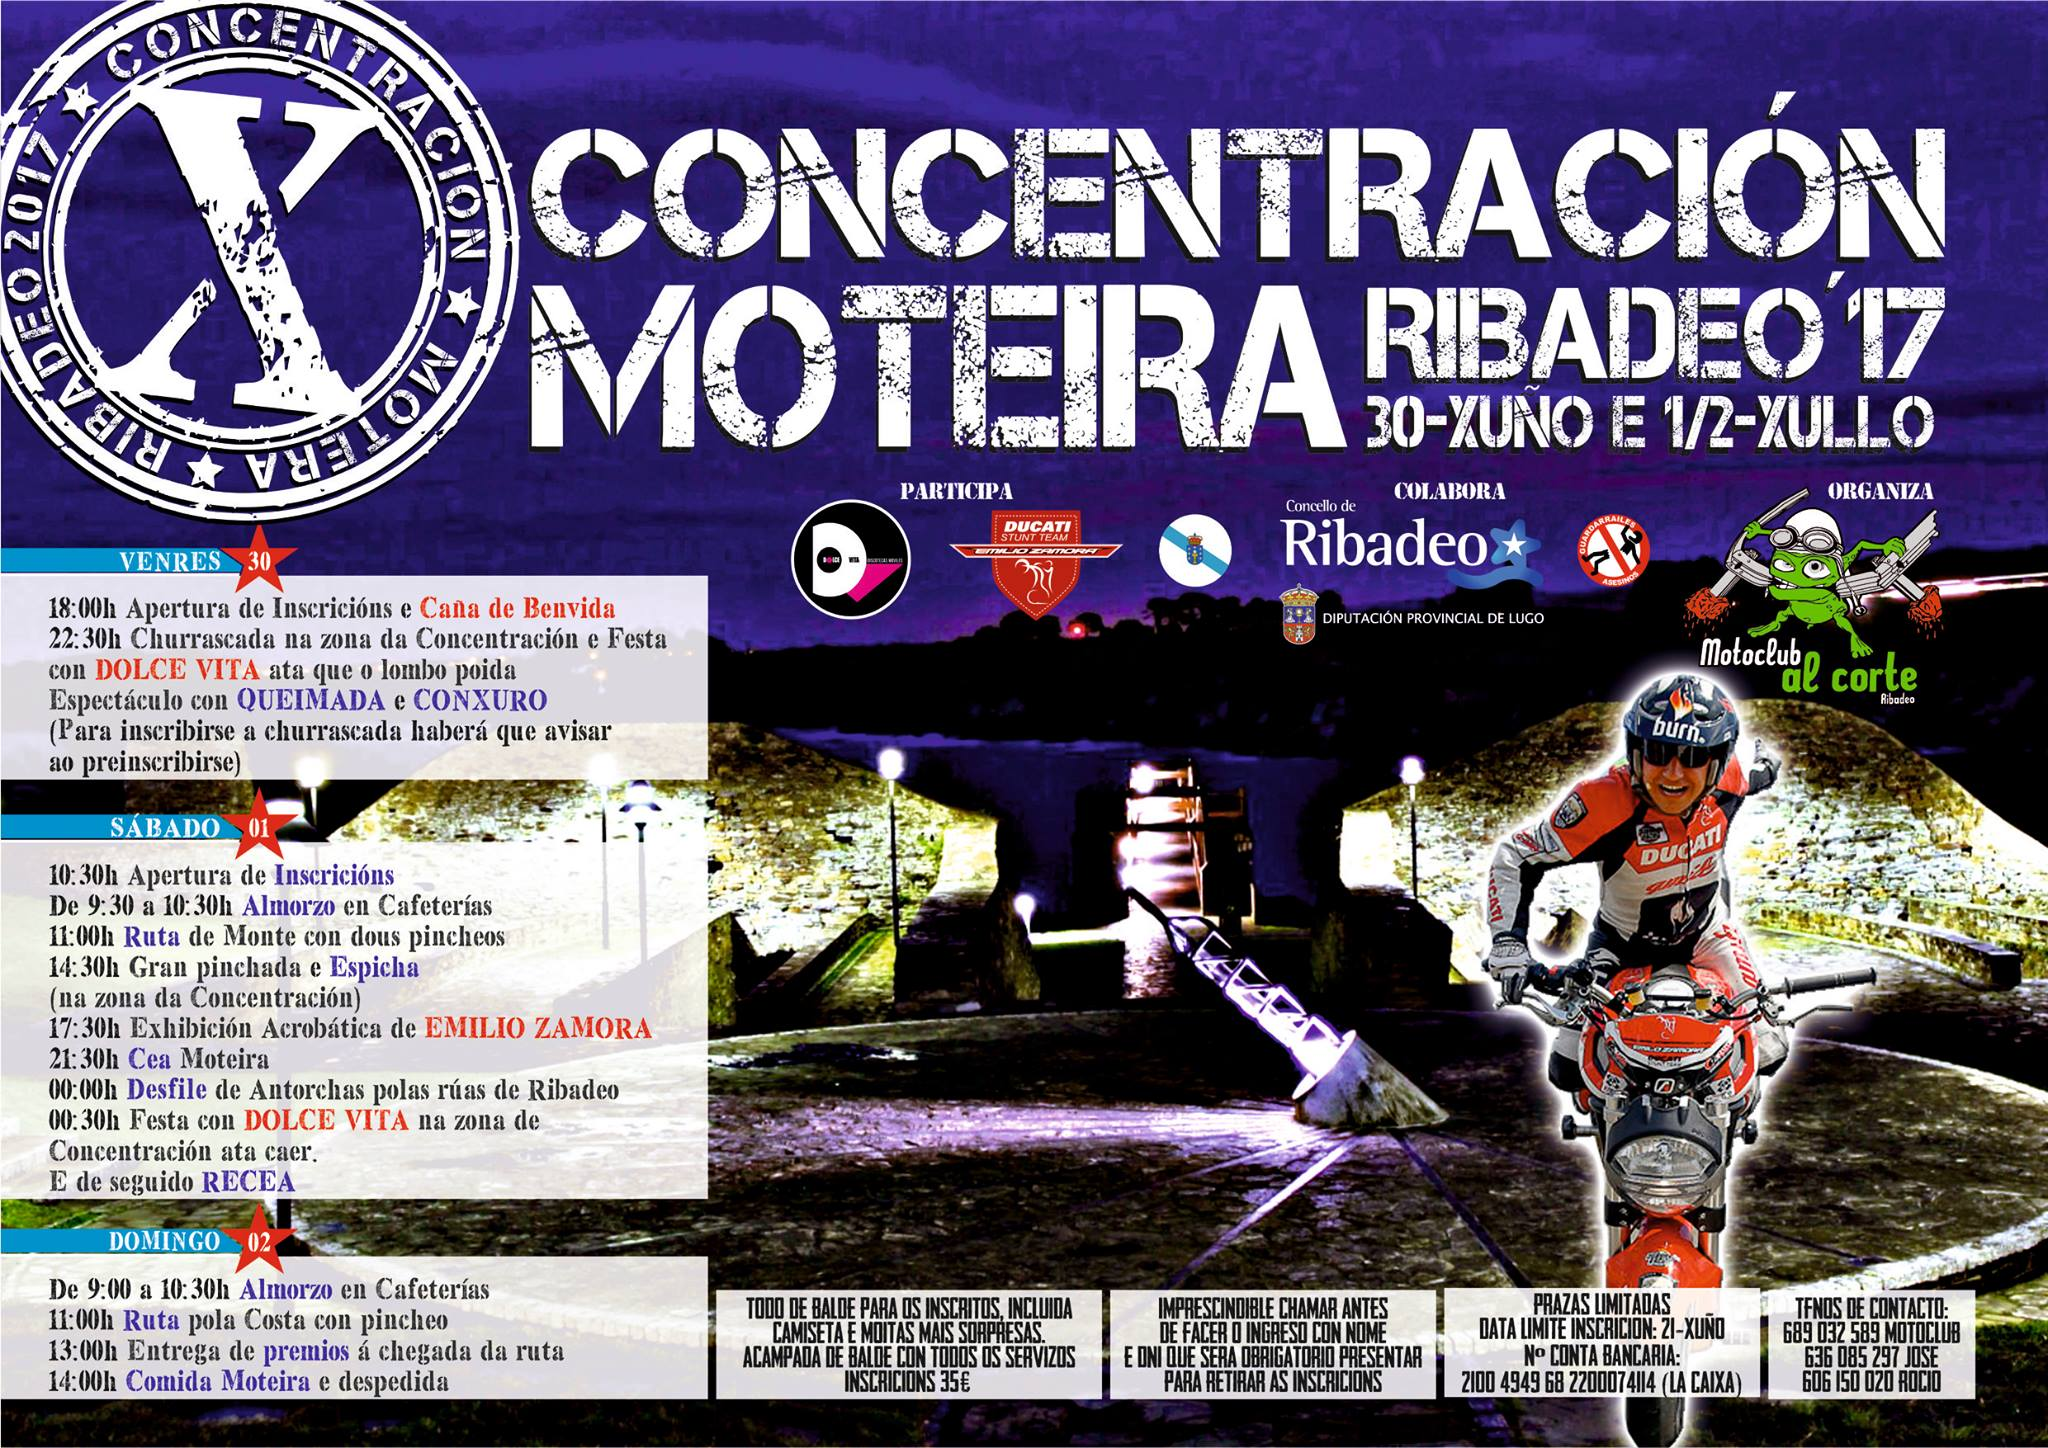 CONCENTRACION_MOTORISTA_RIBADEO_2017_LUGO_FIESTA_MOTERA_EMILIO_ZAMORA_DUCATI_STUNT_TEAM_MOTOR_SHOW_ESPECTACULO_MOTO_QUAD_COCHE_KART_CROSS_CUSTOM_LEGEND_CAR_MINI_BIKE